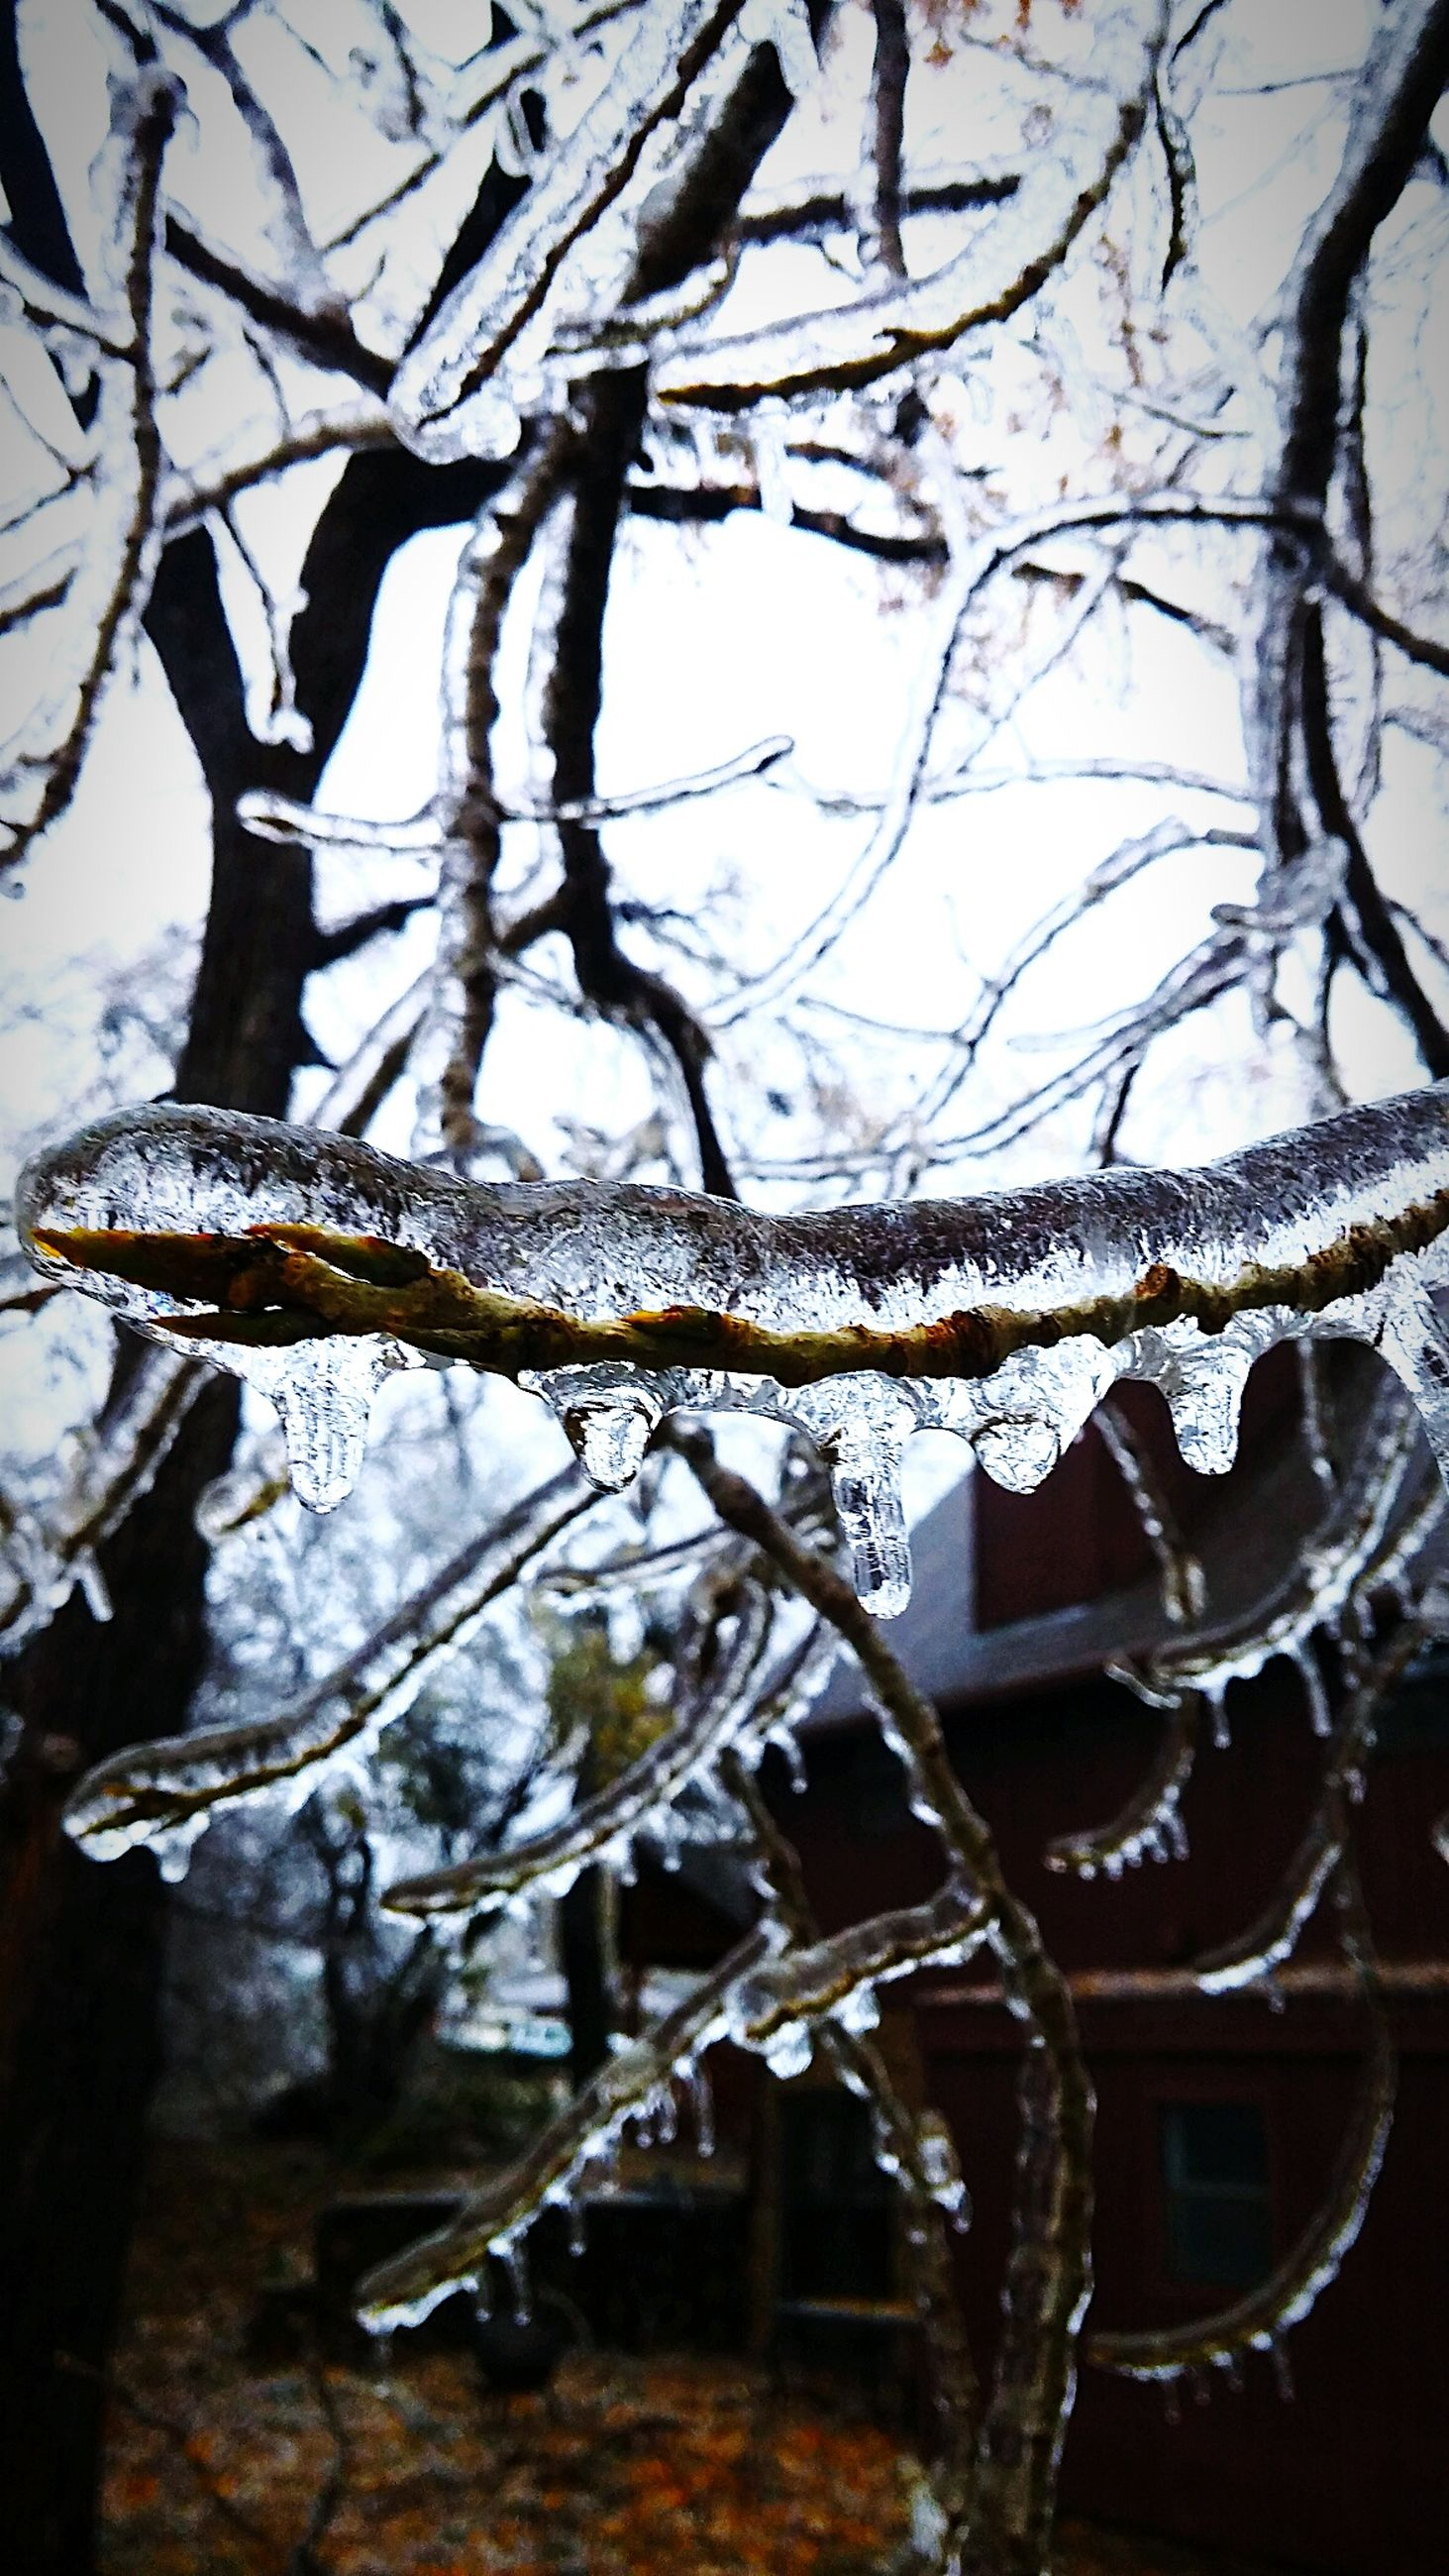 branch, bare tree, tree, winter, cold temperature, snow, season, nature, focus on foreground, close-up, frozen, day, outdoors, no people, weather, twig, tree trunk, hanging, low angle view, built structure